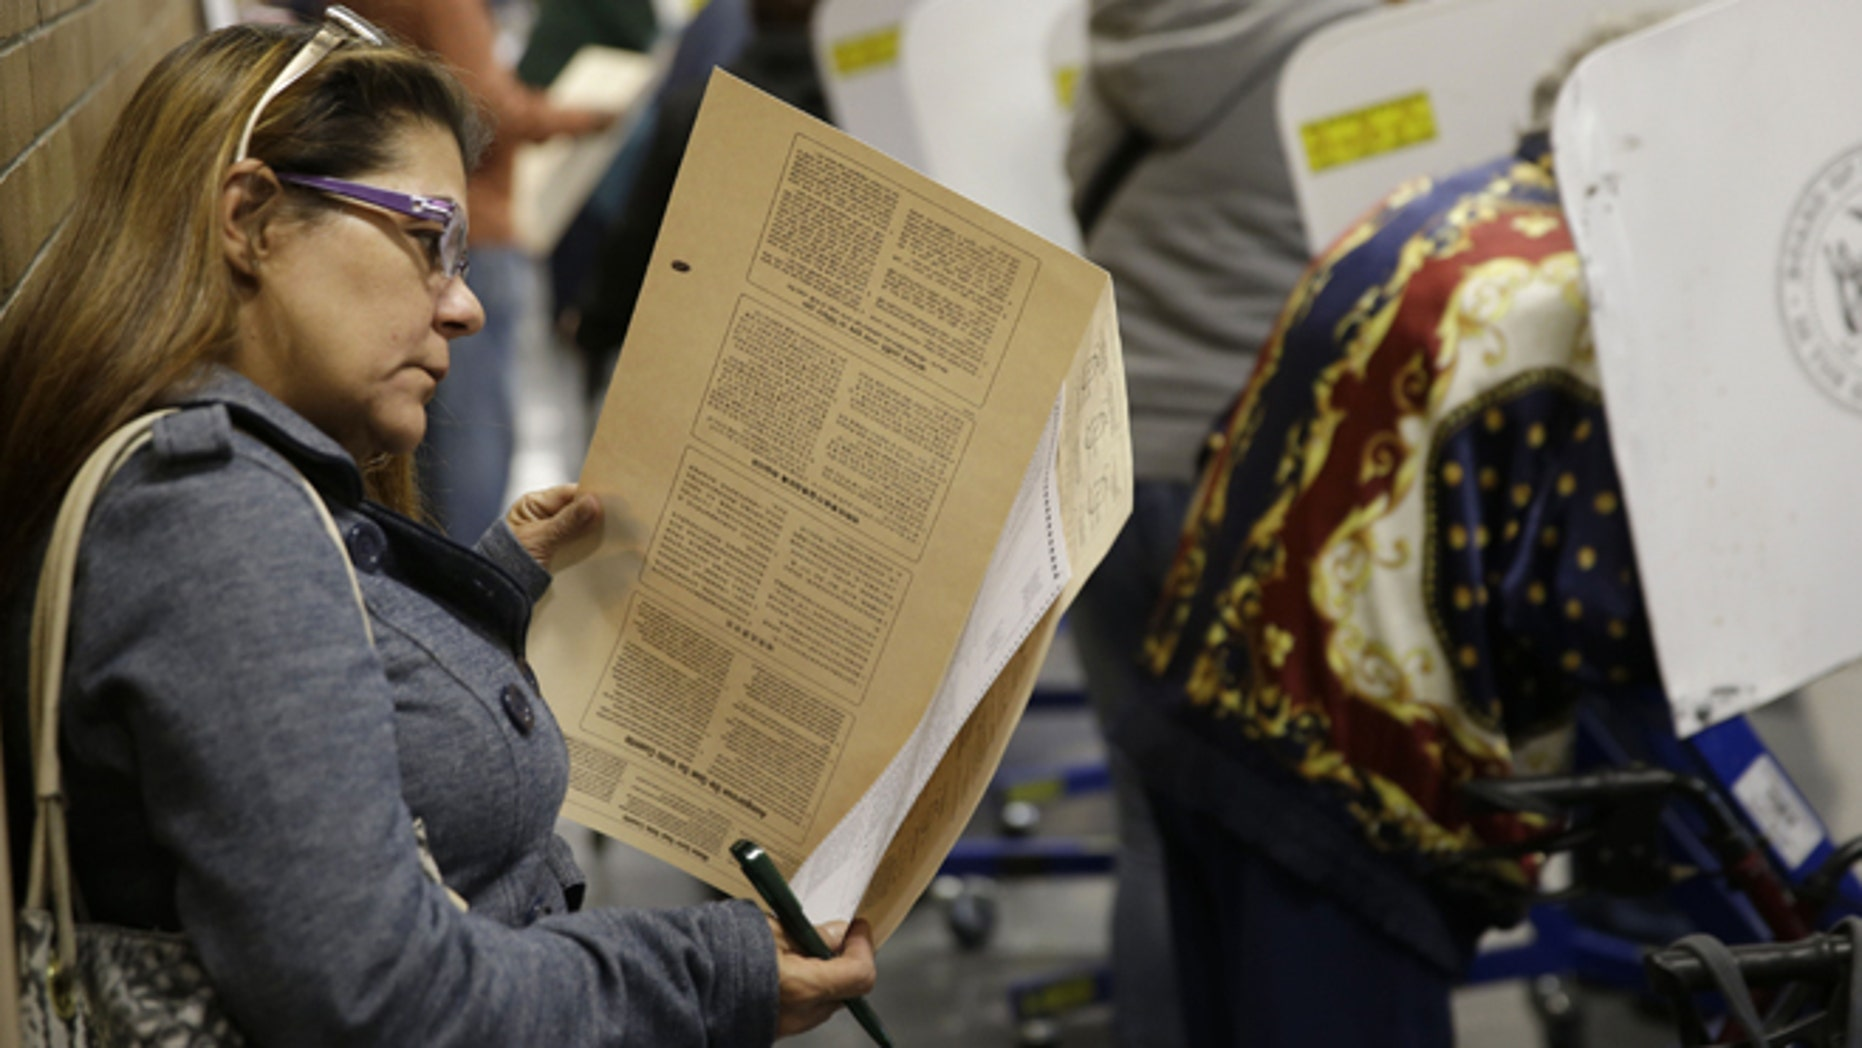 Because all the privacy booths are full, Miriam Rodriguez looks over her ballot while leaning against the wall at a polling site in New York, Tuesday, Nov. 4, 2014. (AP Photo/Seth Wenig)